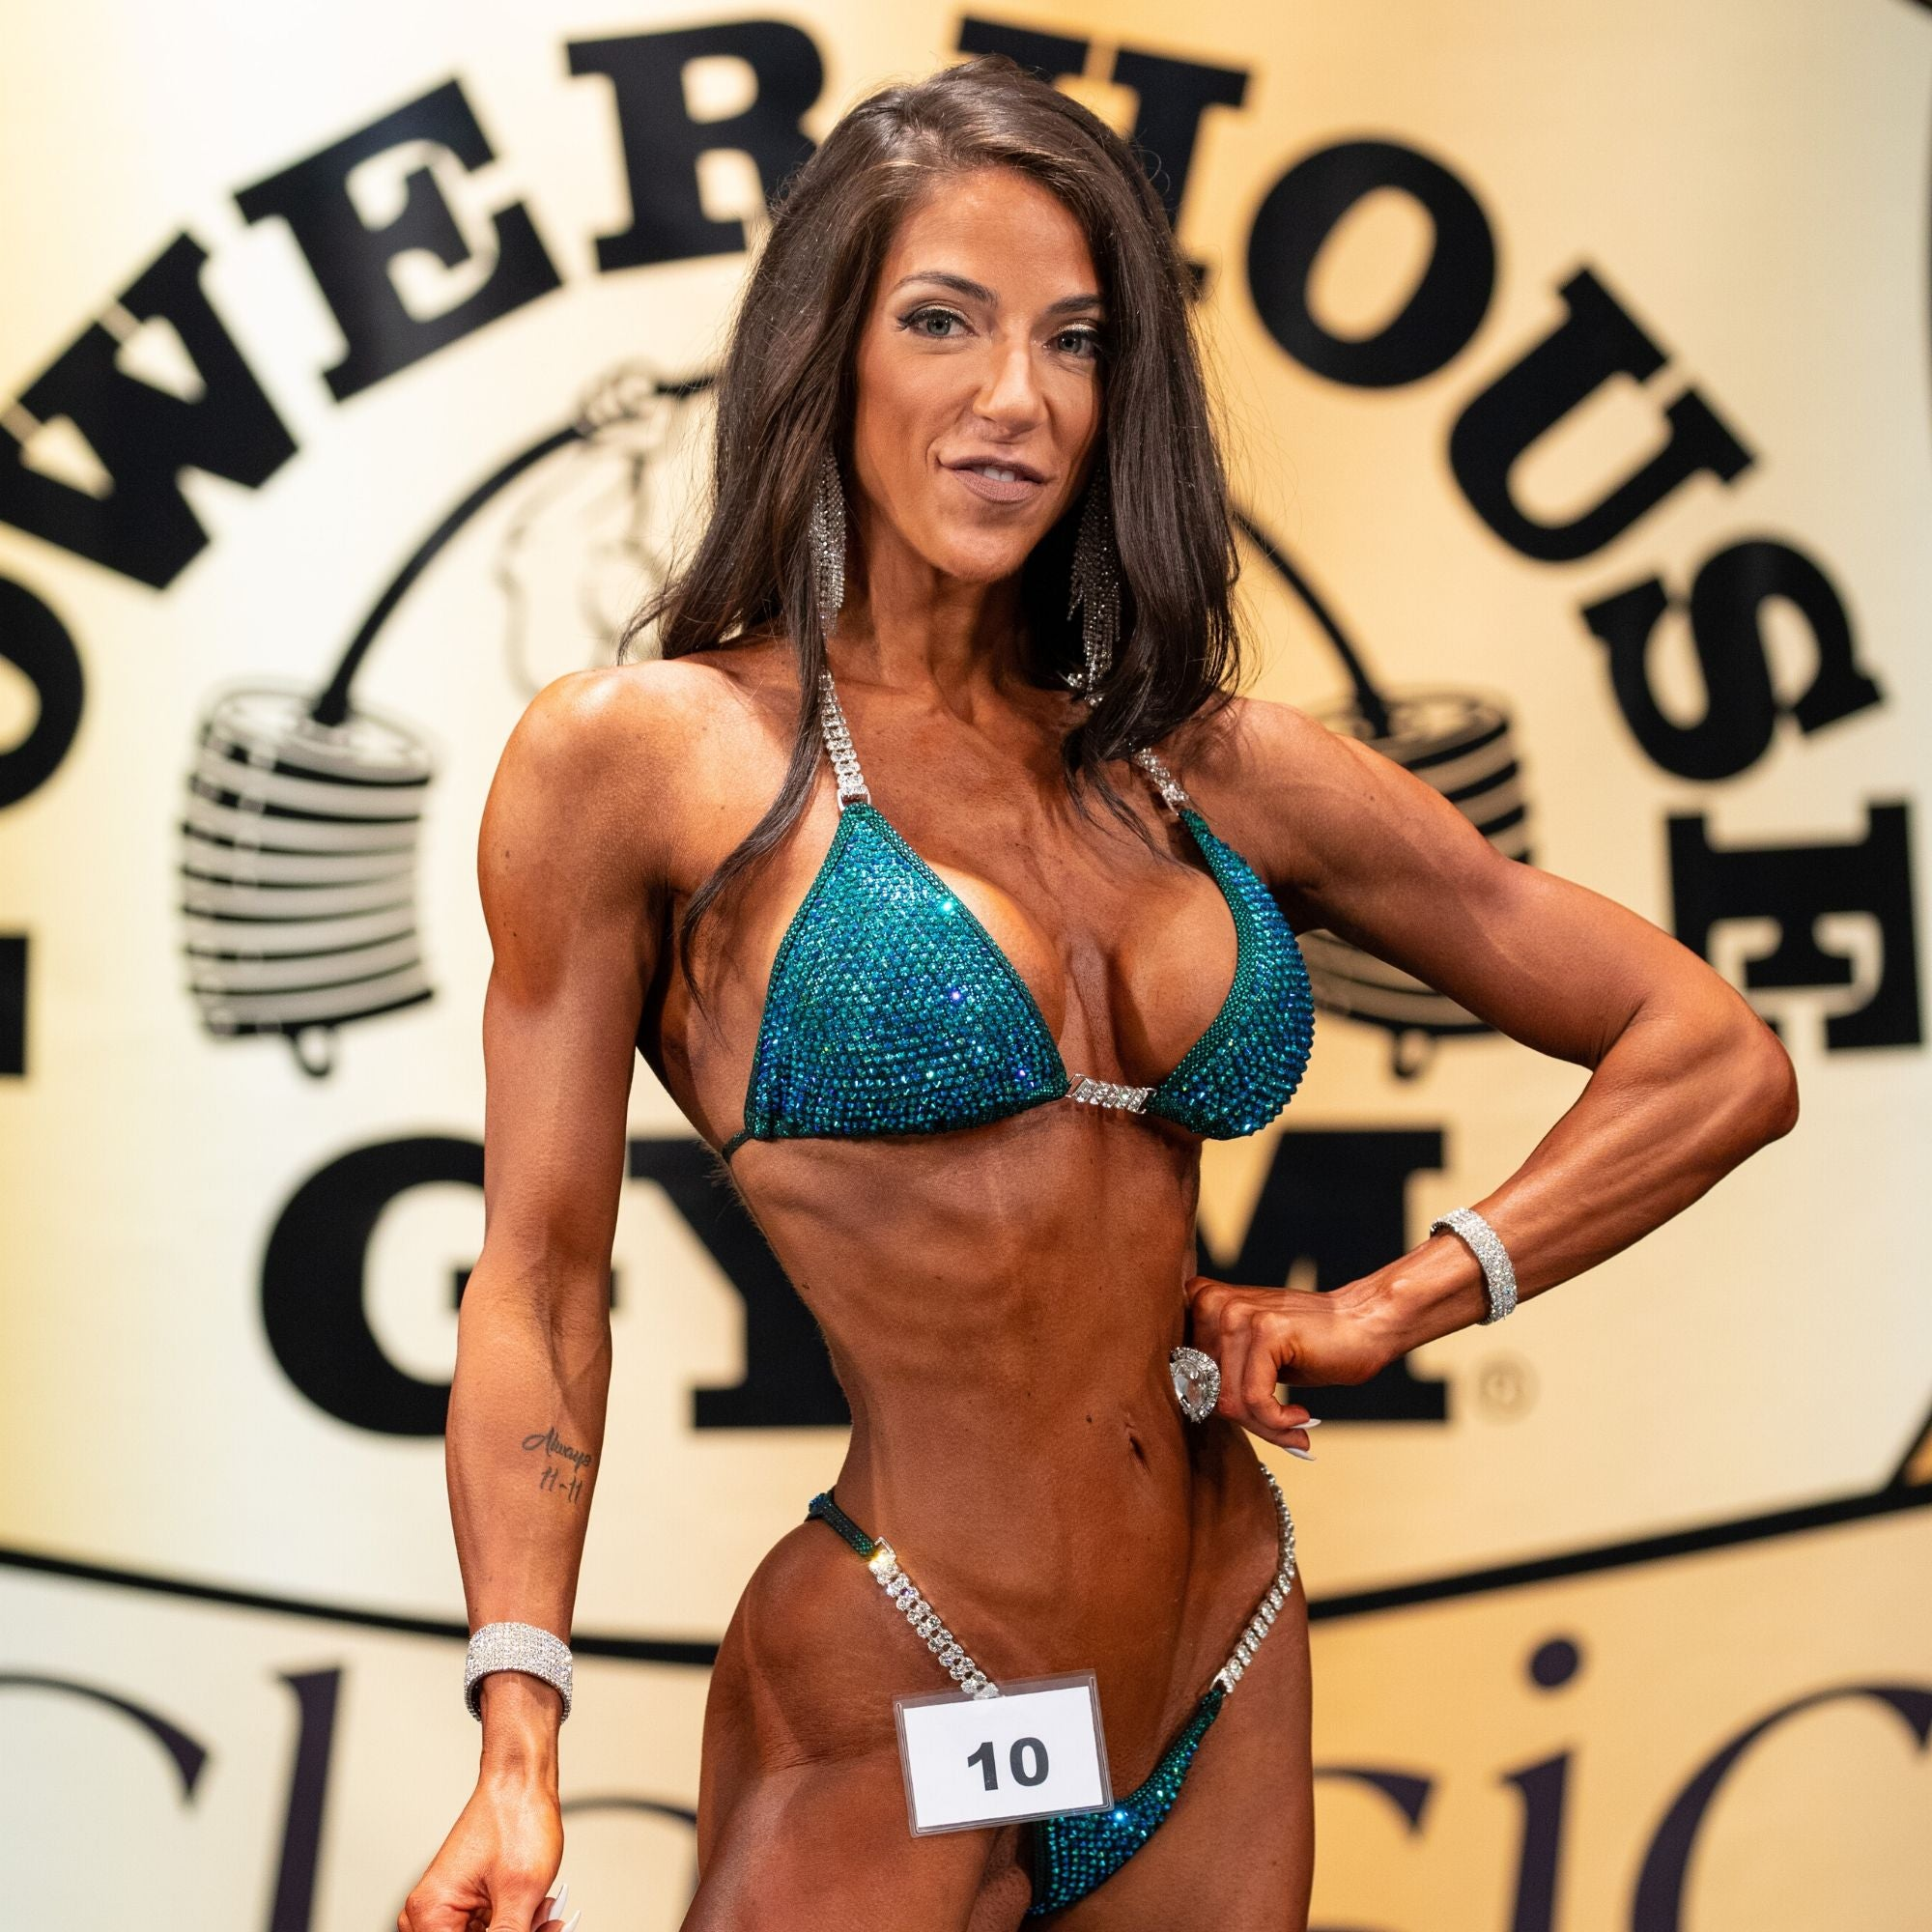 Ashley Kaltwasser @ashleykfit Angel Competition Bikinis Sponsored Athlete How to become a sponsored athlete for npc bikini competitions